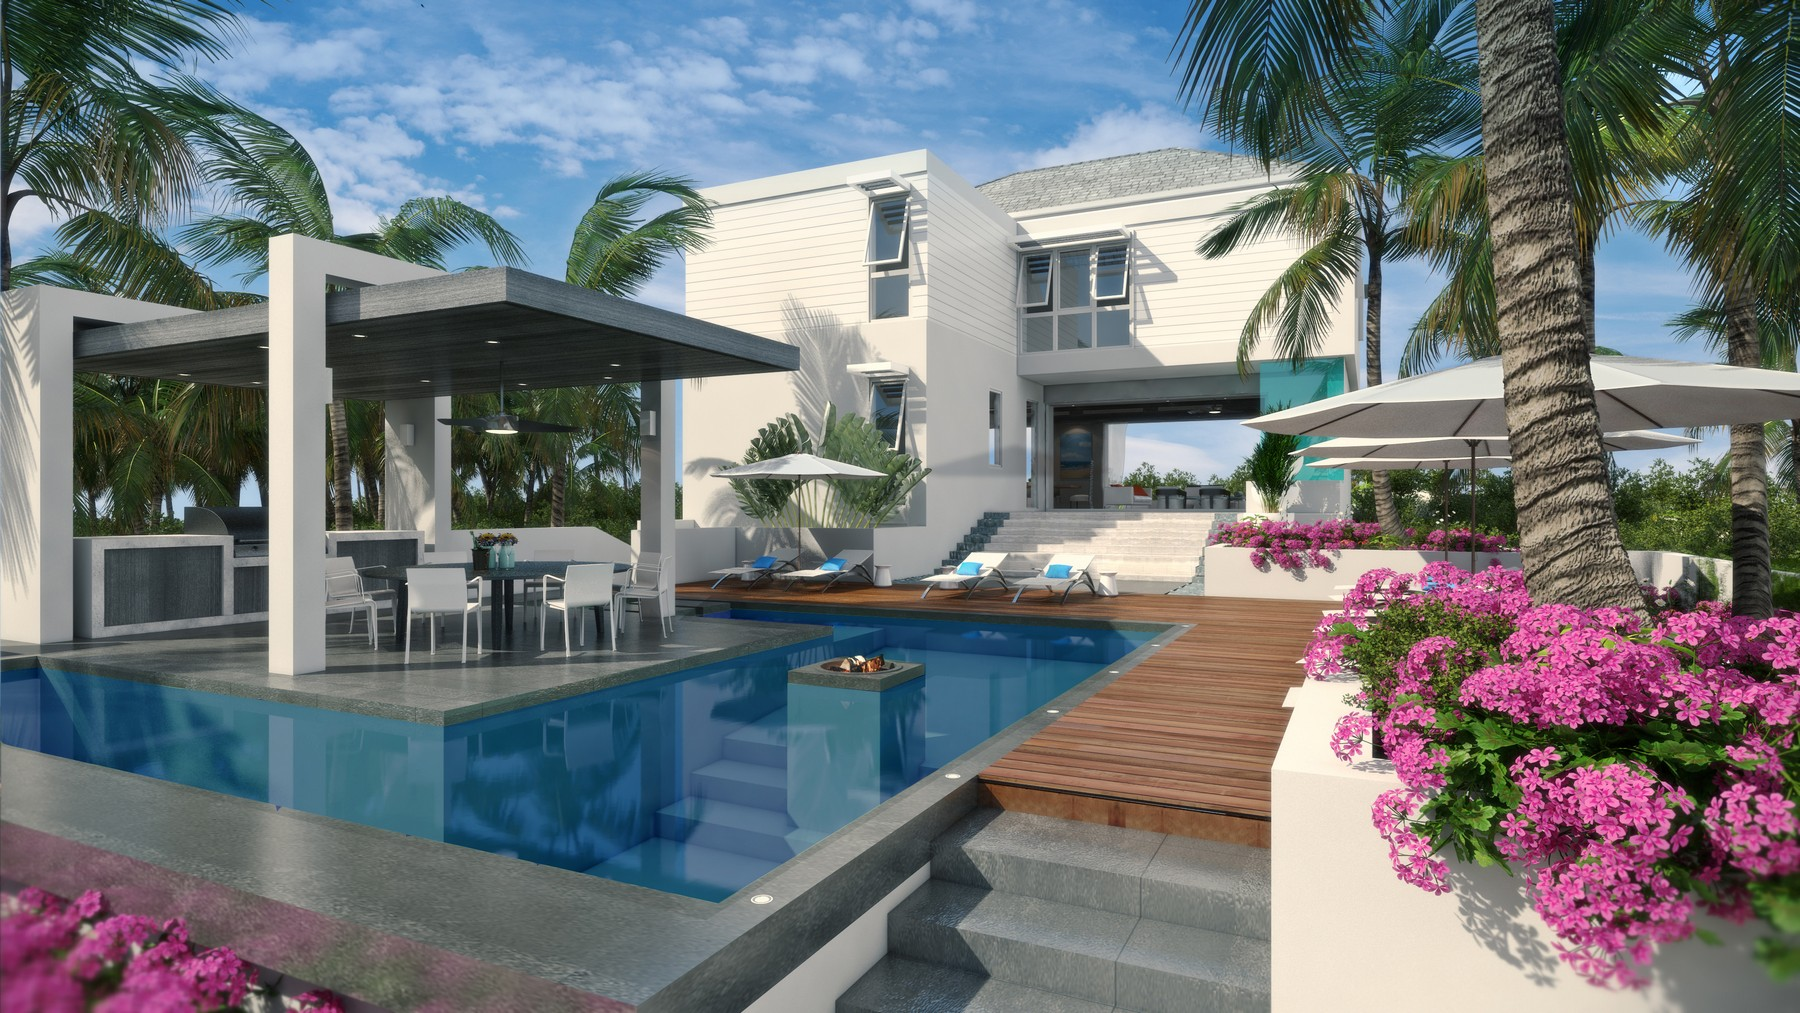 Single Family Home for Sale at The Dunes Villas ~ Managed by Grace Bay Resorts North Shore Beachfront Turtle Cove, Providenciales TC Turks And Caicos Islands